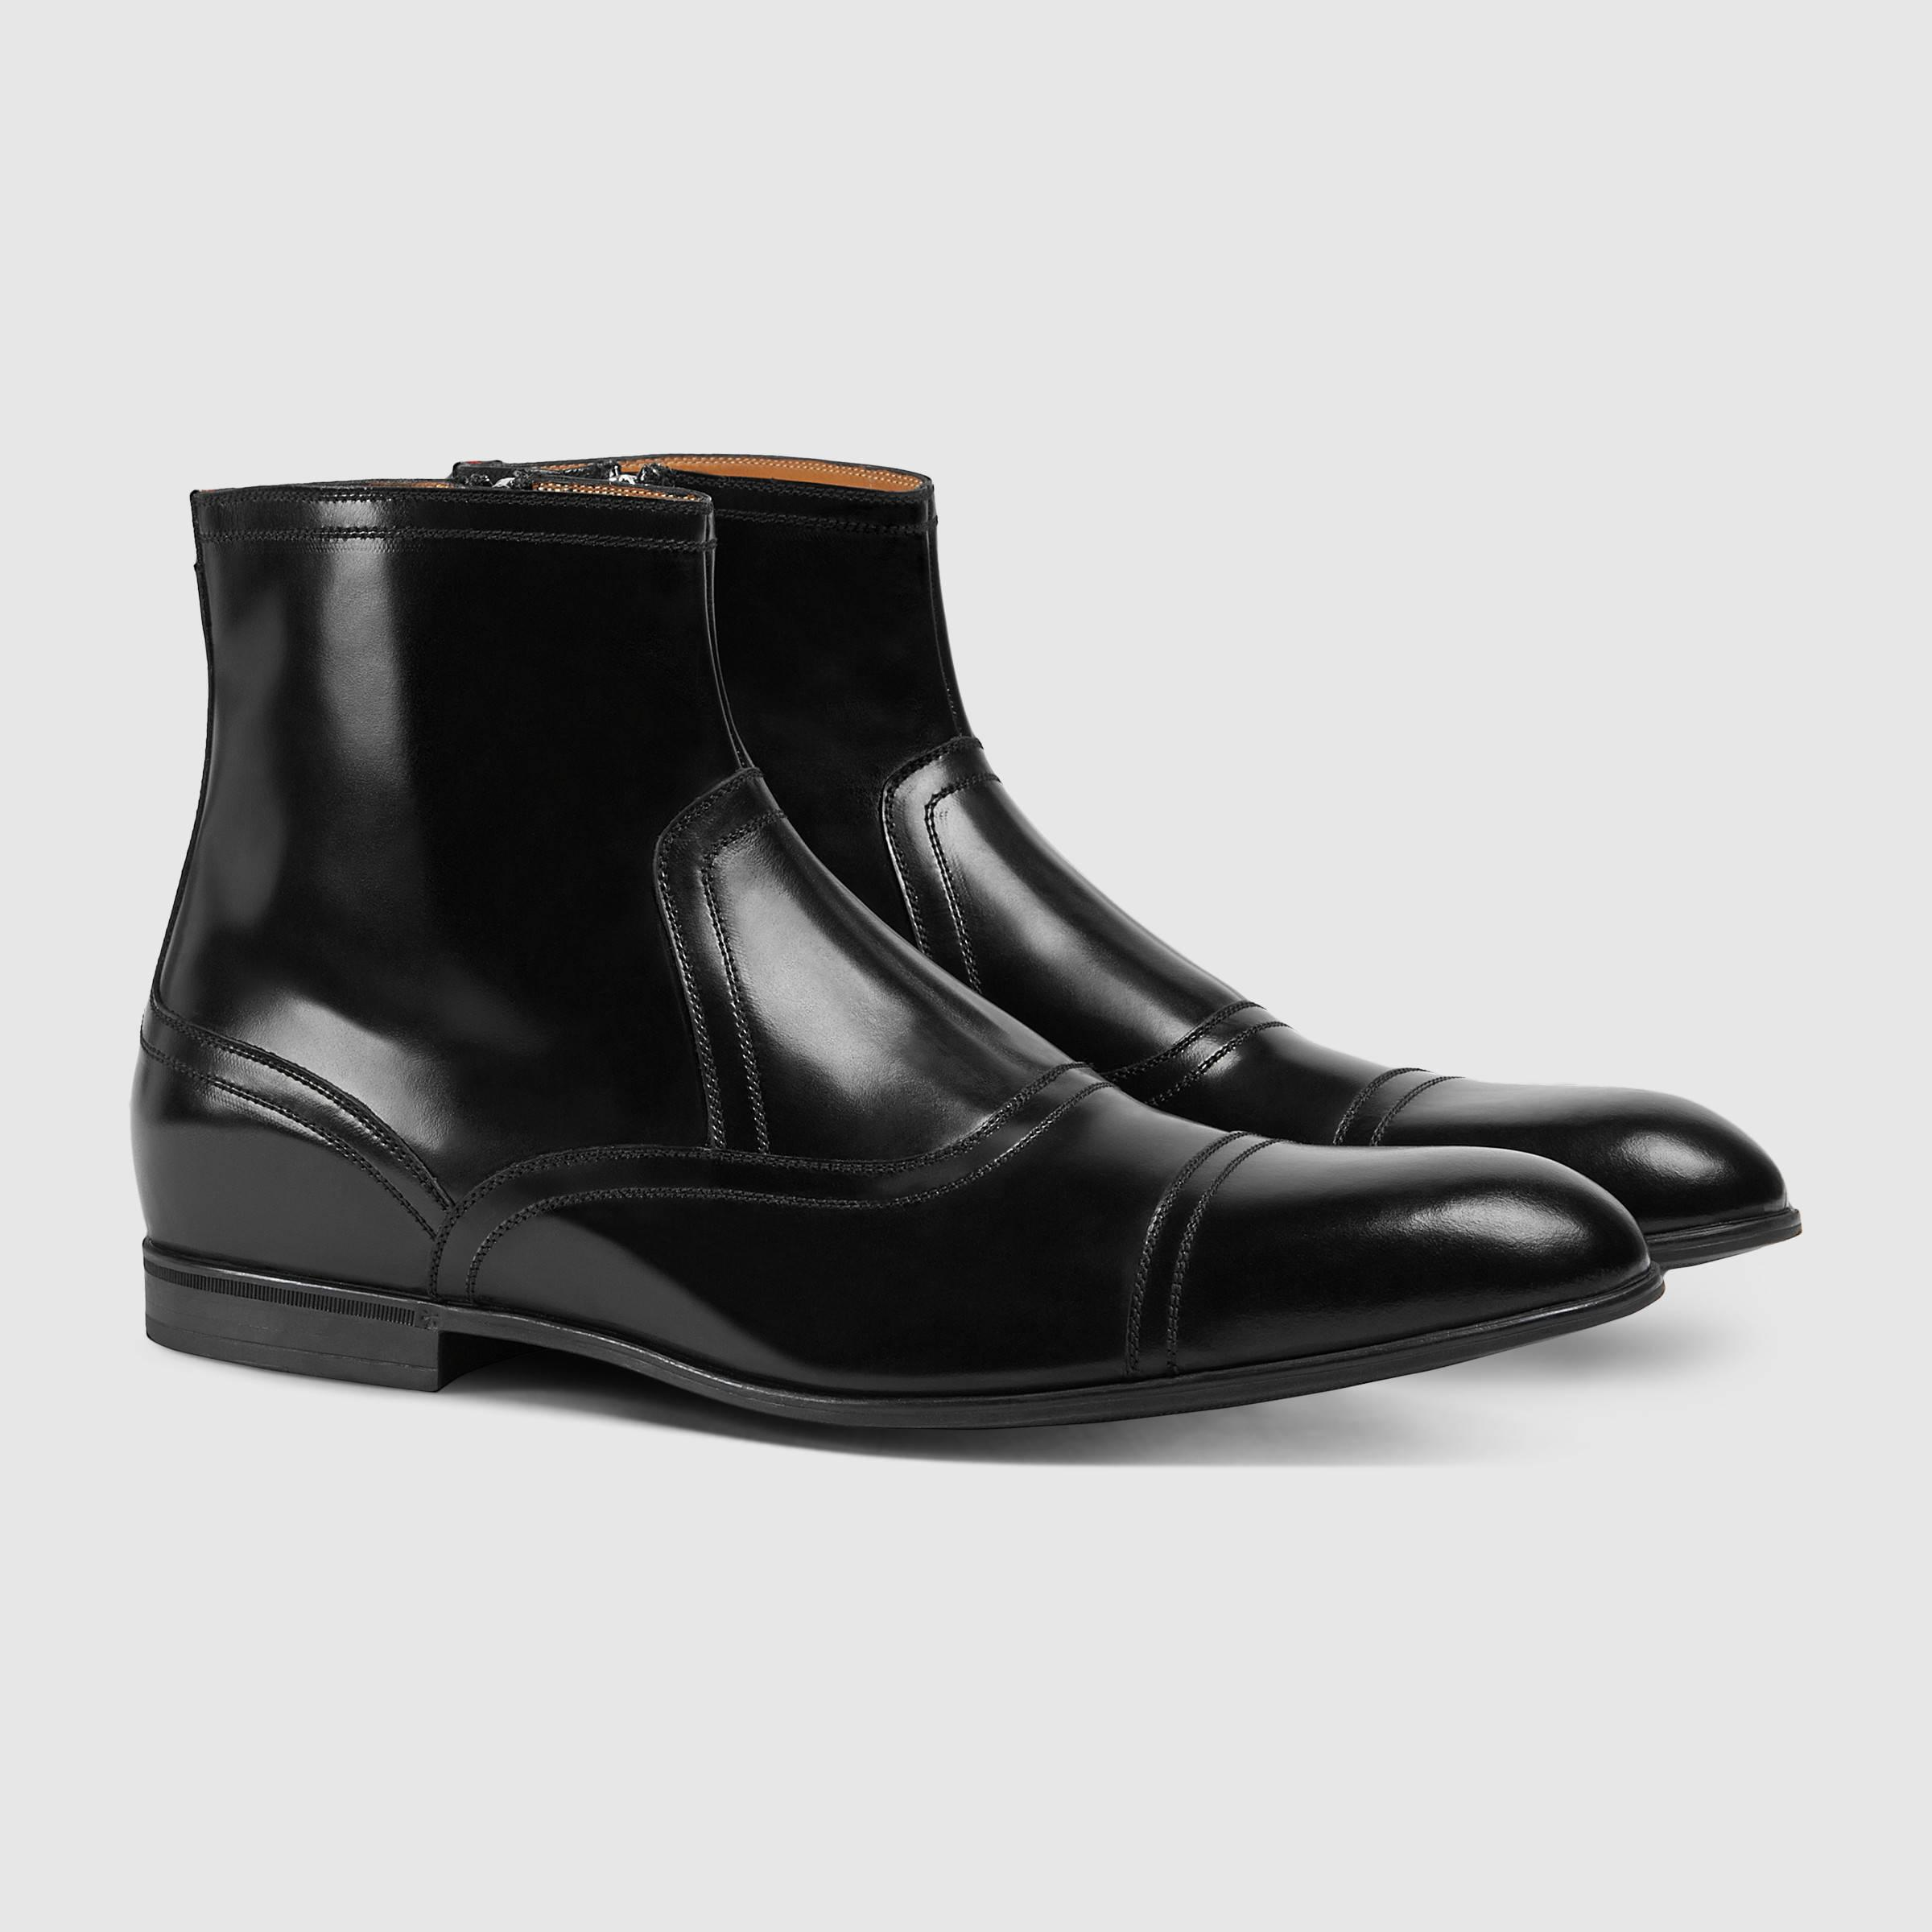 lyst gucci leather boot in black for men